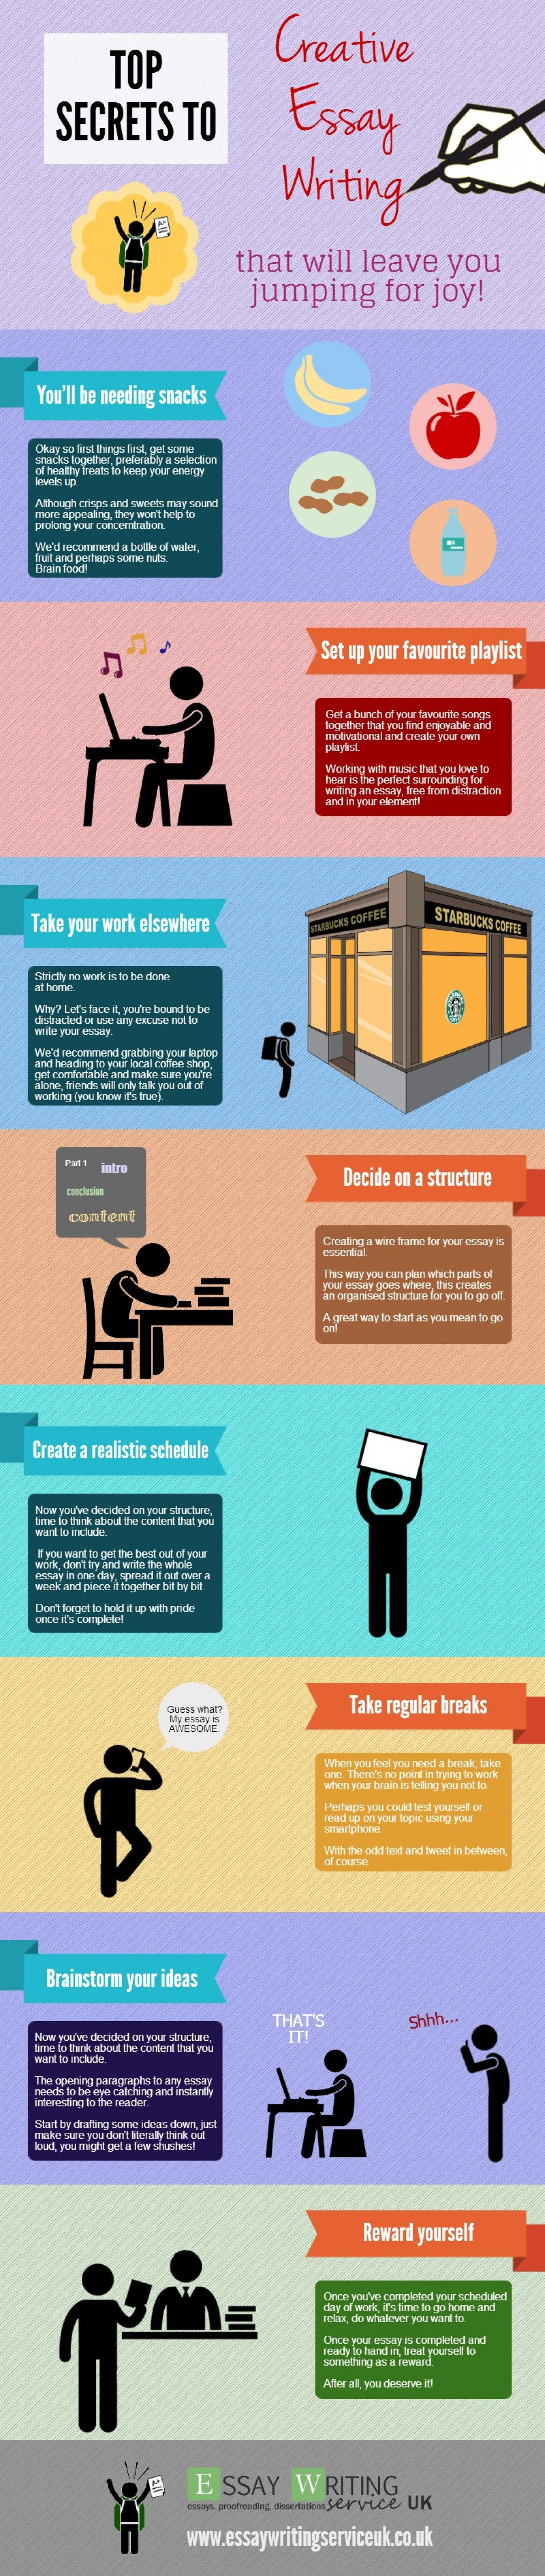 images about essay infographics on pinterest   essay writing        images about essay infographics on pinterest   essay writing  infographic and proposals